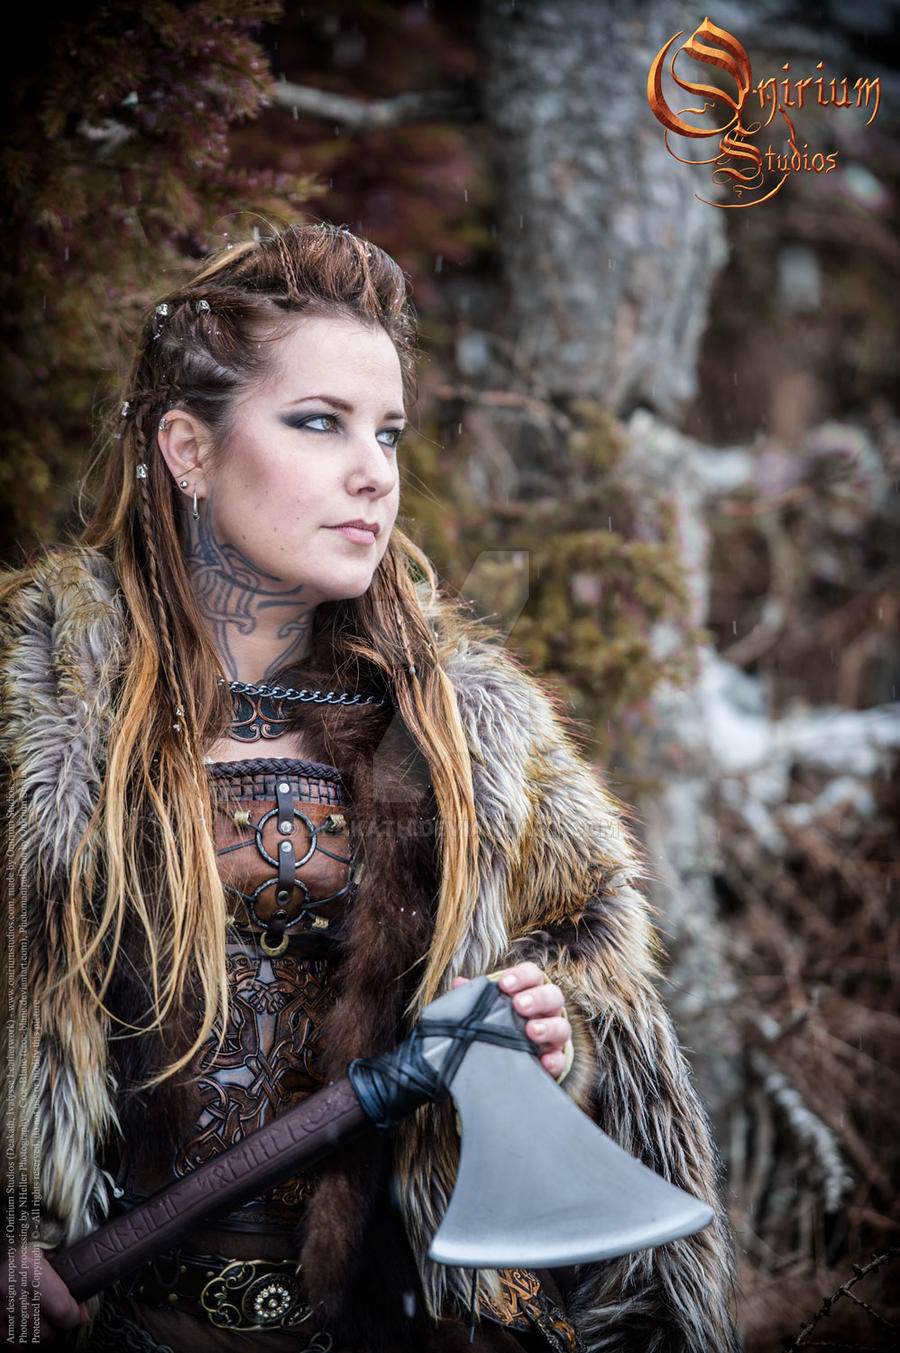 Viking inspired female set - photoshoot 2017 - 2 by Deakath